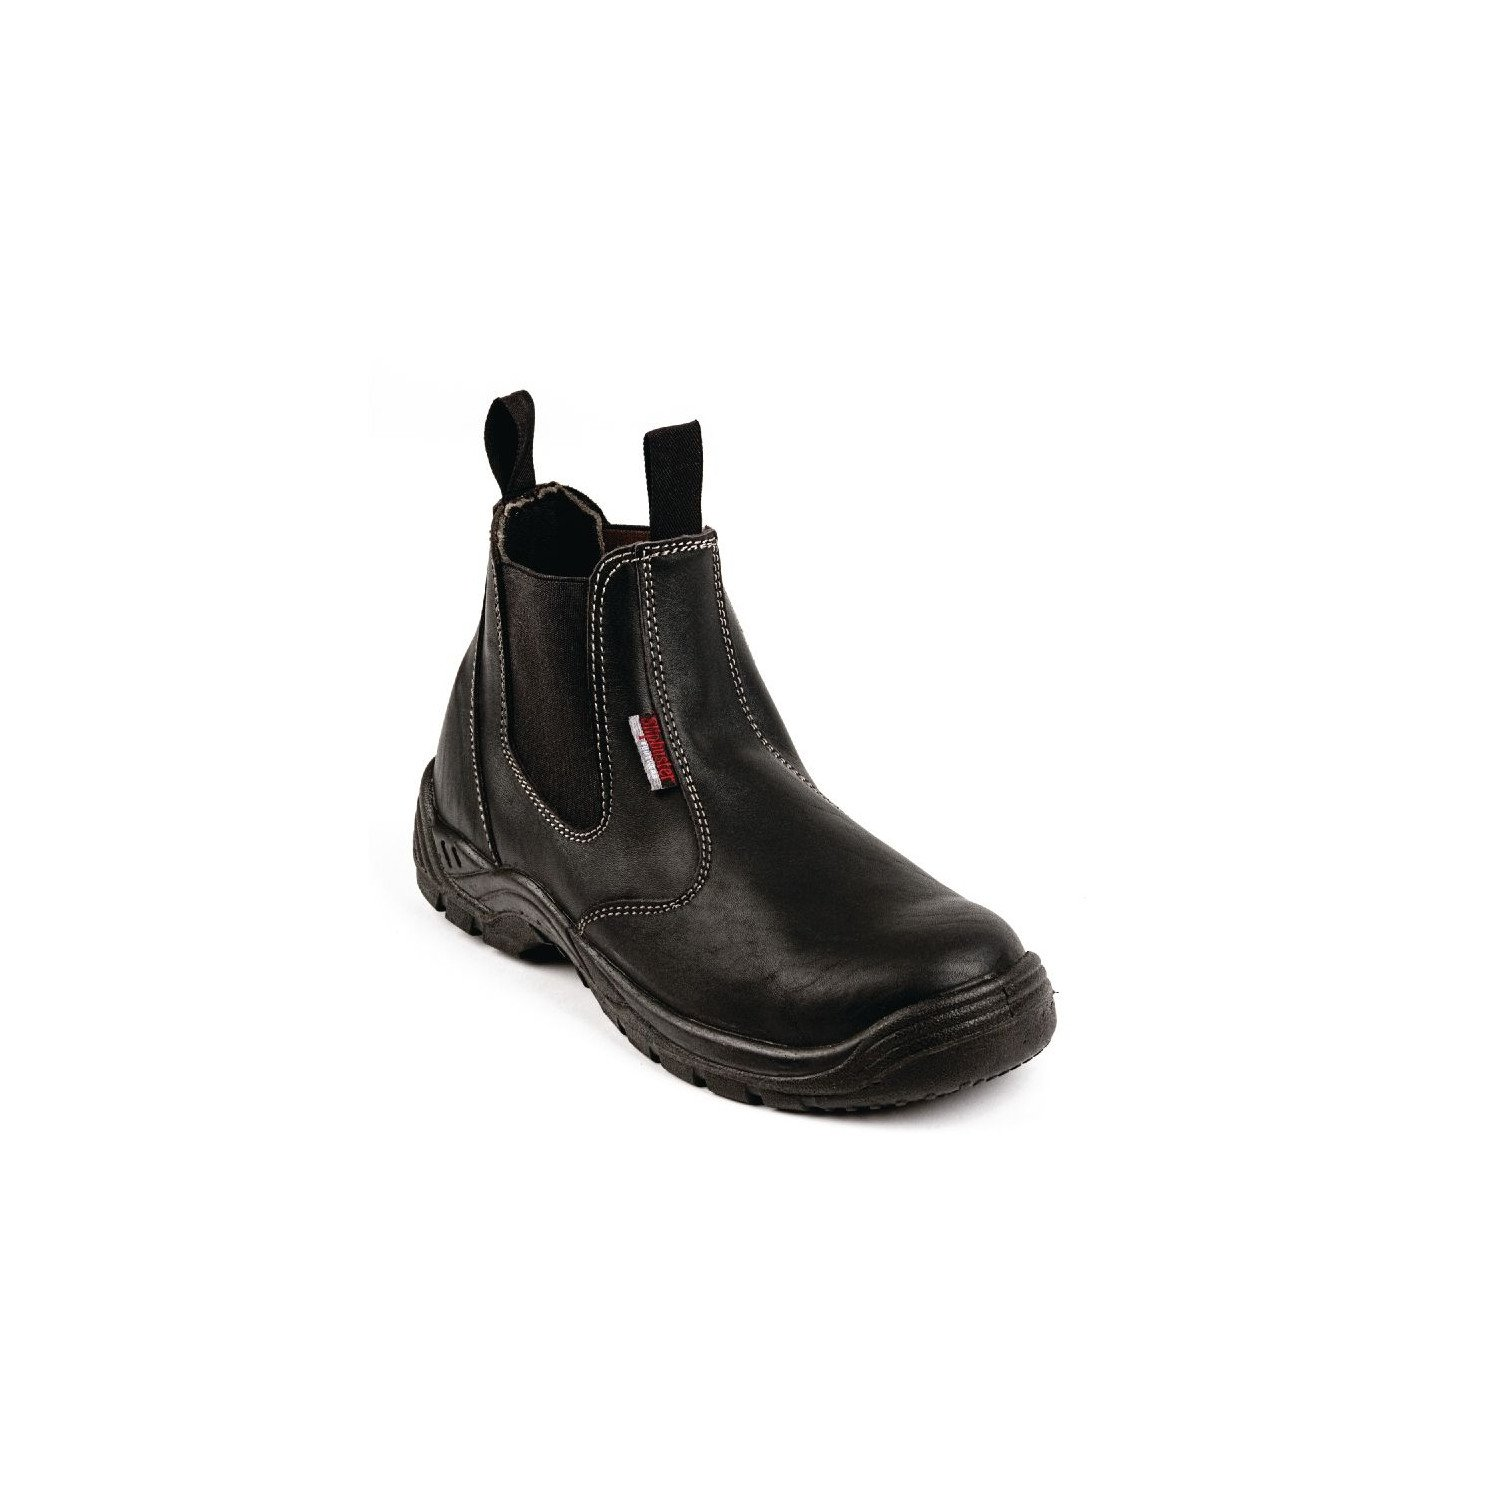 Bottines Slipbuster - 42 SLIPBUSTER FOOTWEAR Nisbets Vêtements